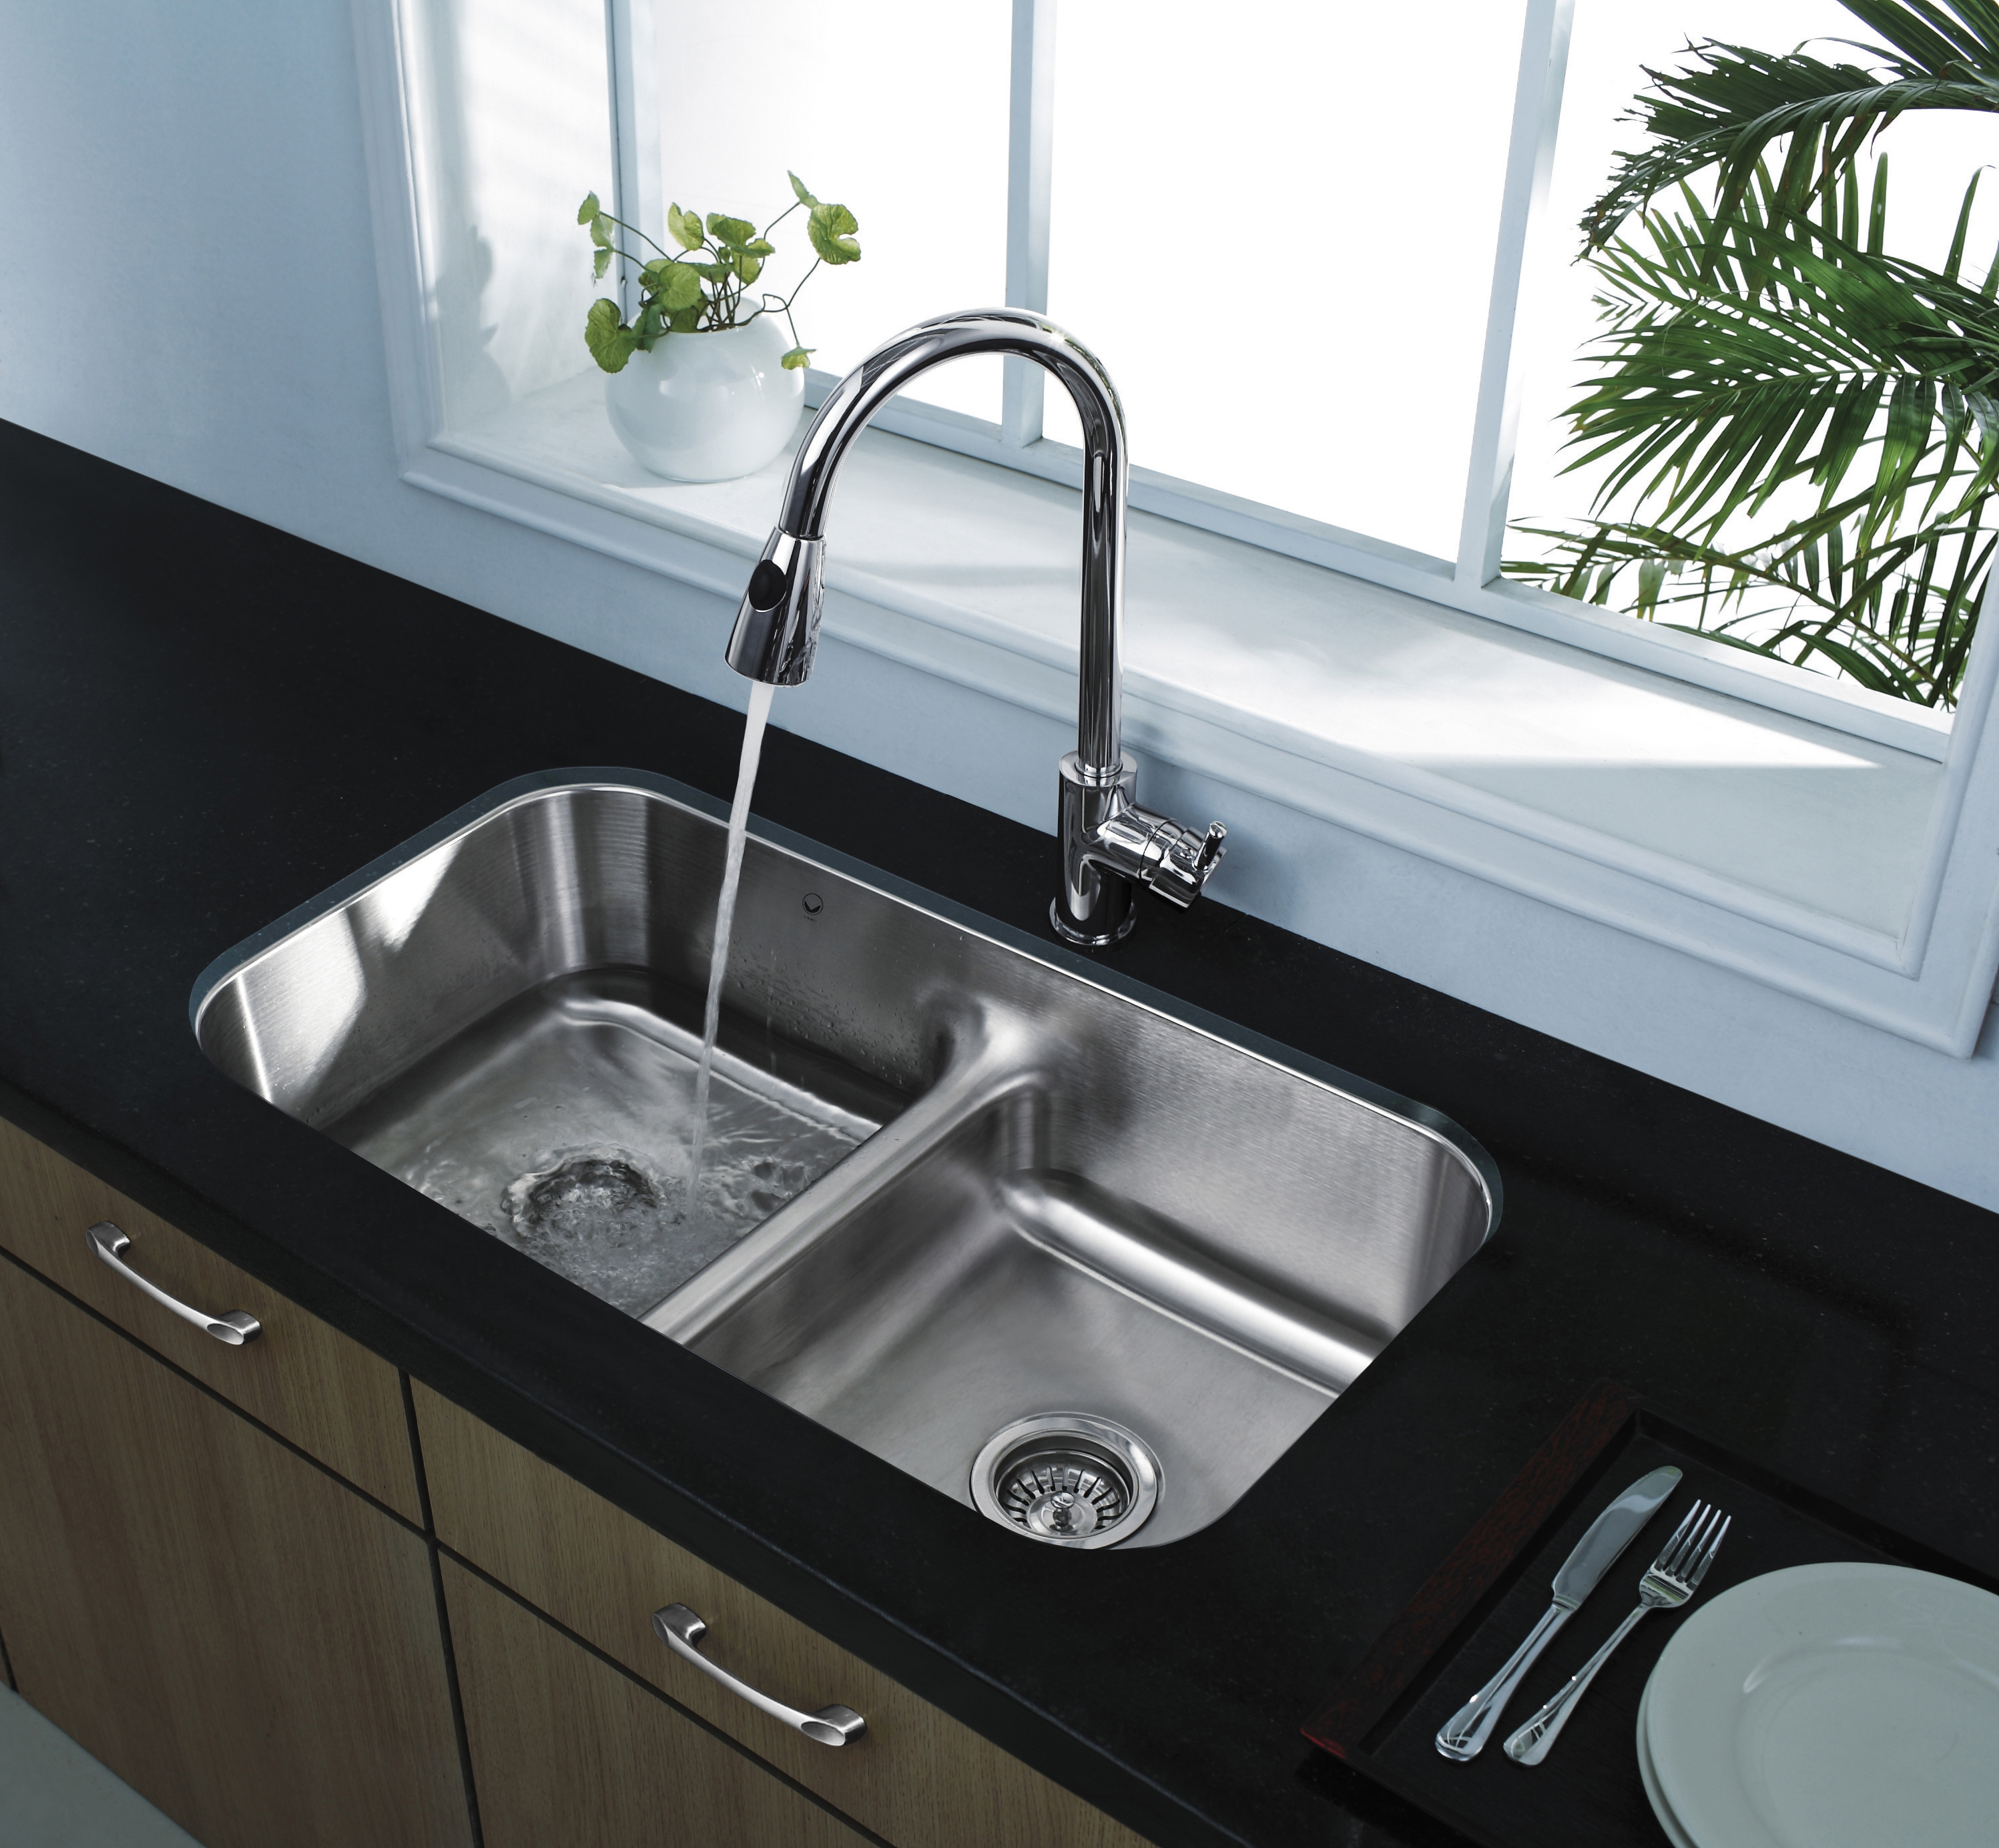 Ideas, best faucet for small kitchen sink best faucet for small kitchen sink kitchen sink design trends large size of kitchen cool modish 2995 x 2769  .